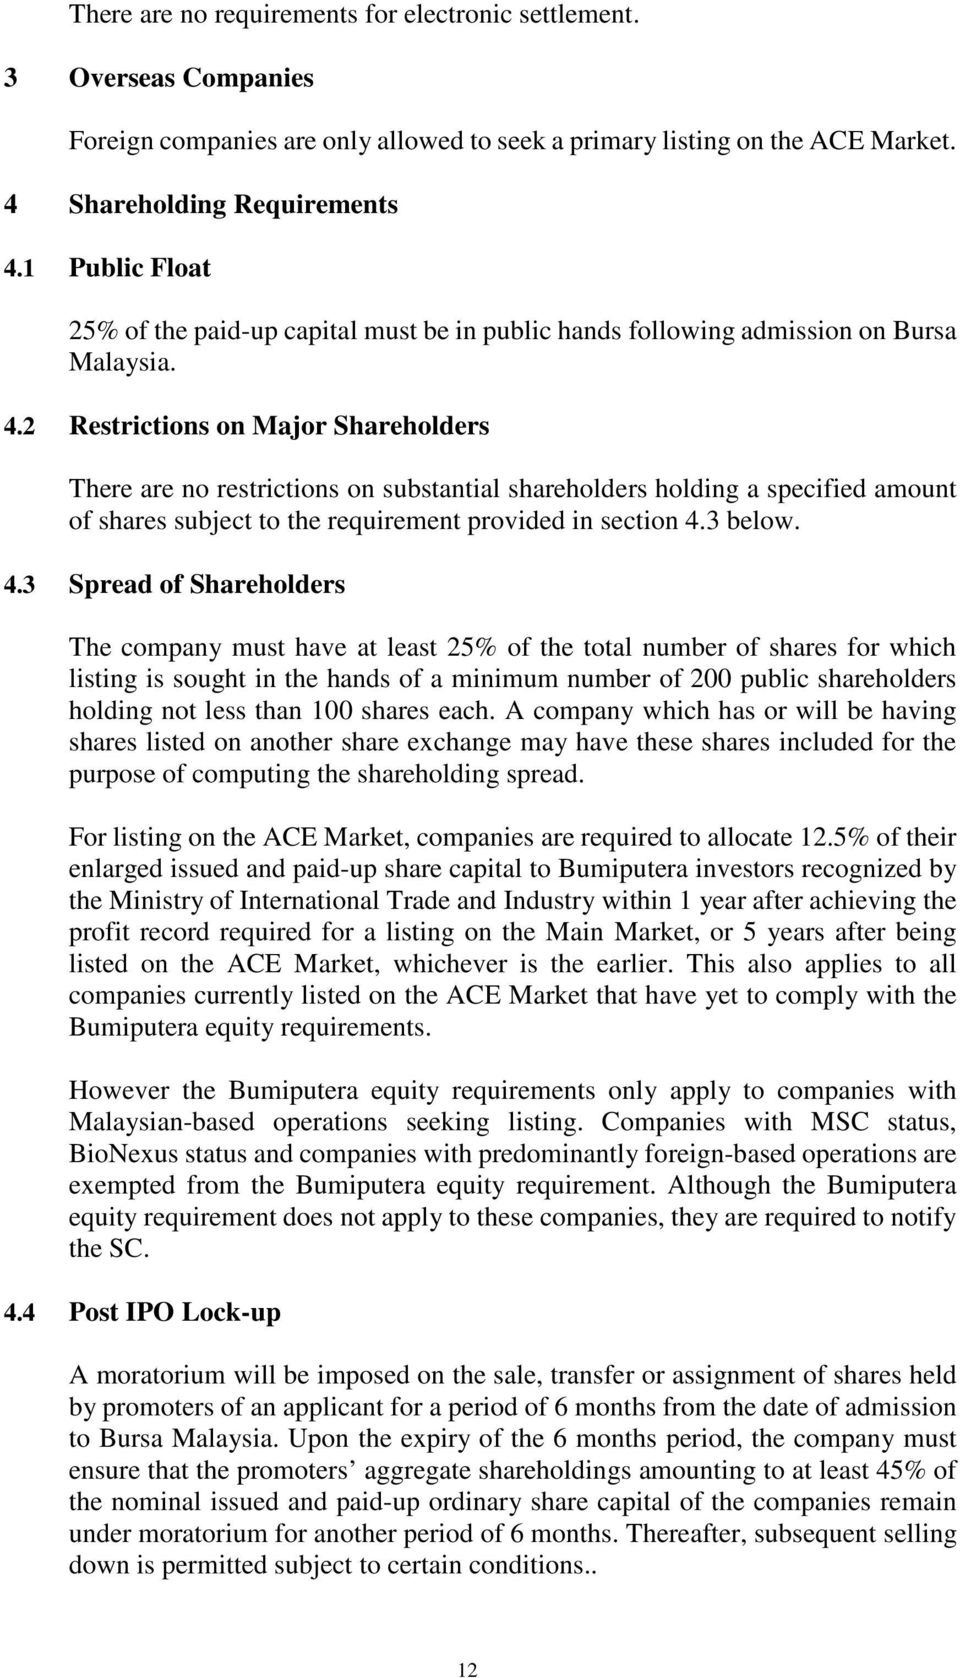 2 Restrictions on Major Shareholders There are no restrictions on substantial shareholders holding a specified amount of shares subject to the requirement provided in section 4.